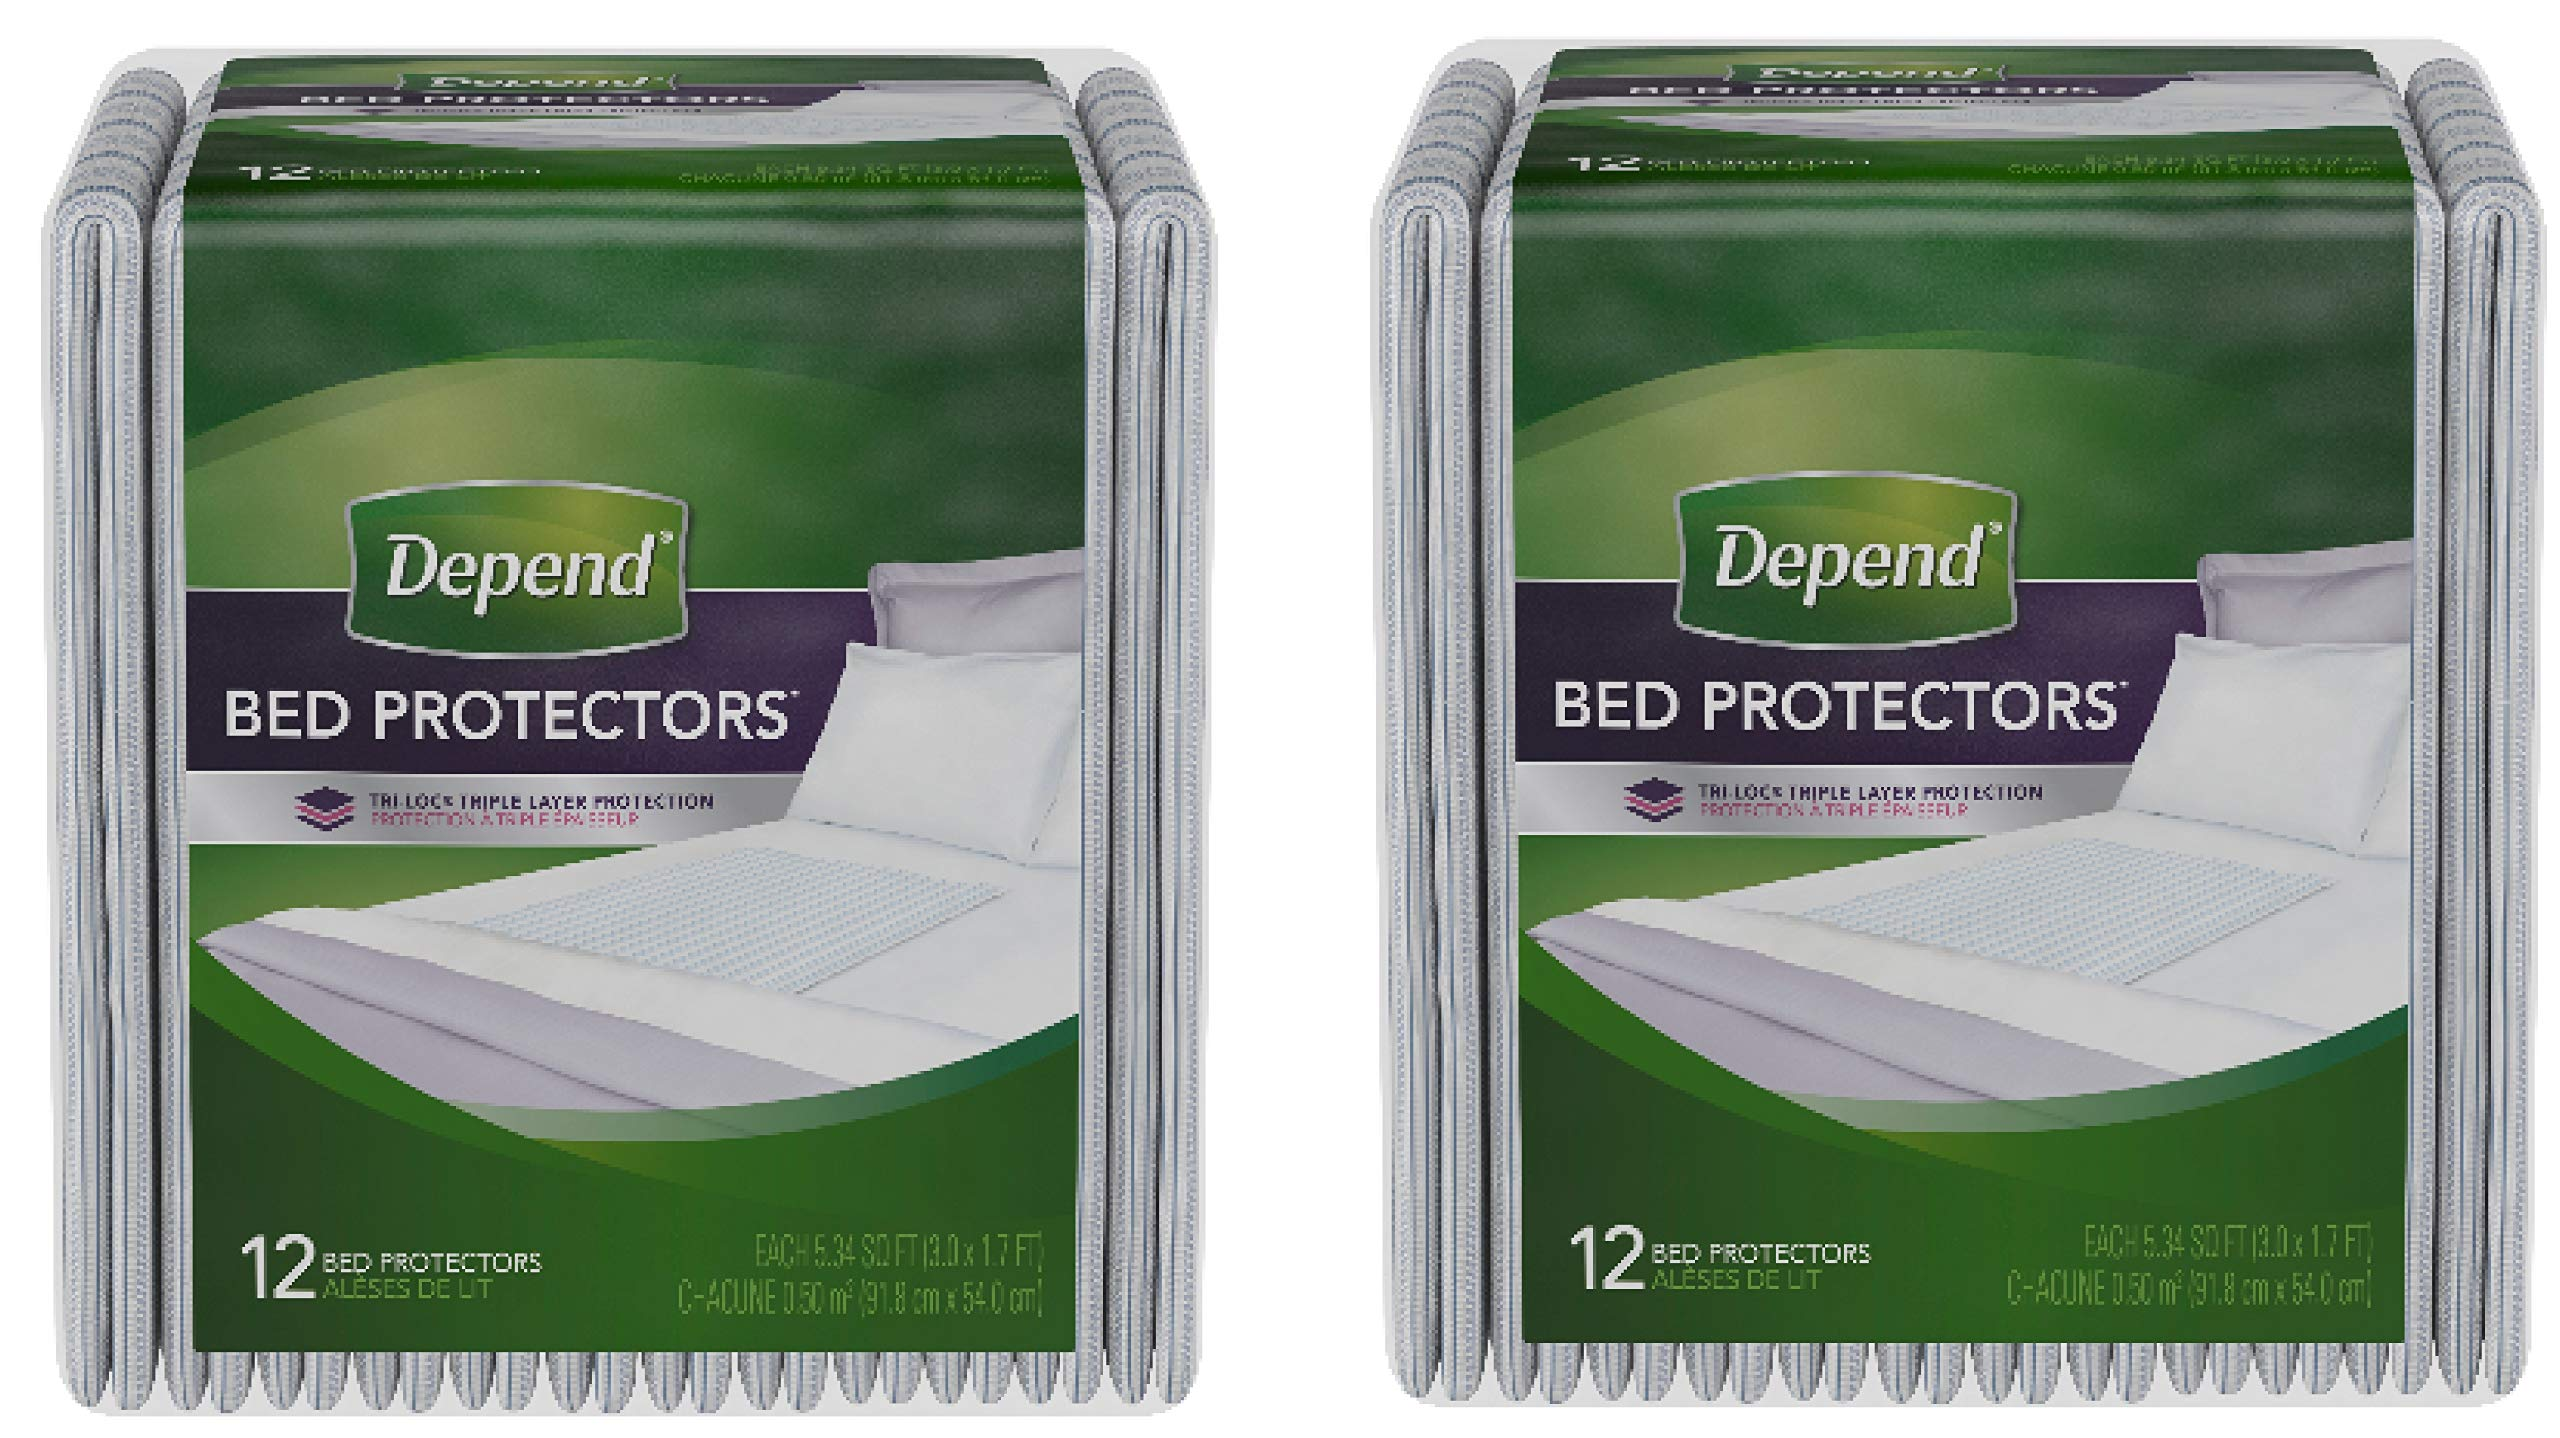 Incontinence Bed Protectors, Disposable Underpad, Overnight Absorbency, 12 Count Overnight Absorbency for a Restful Night's Sleep (Pack of 2) by Depend